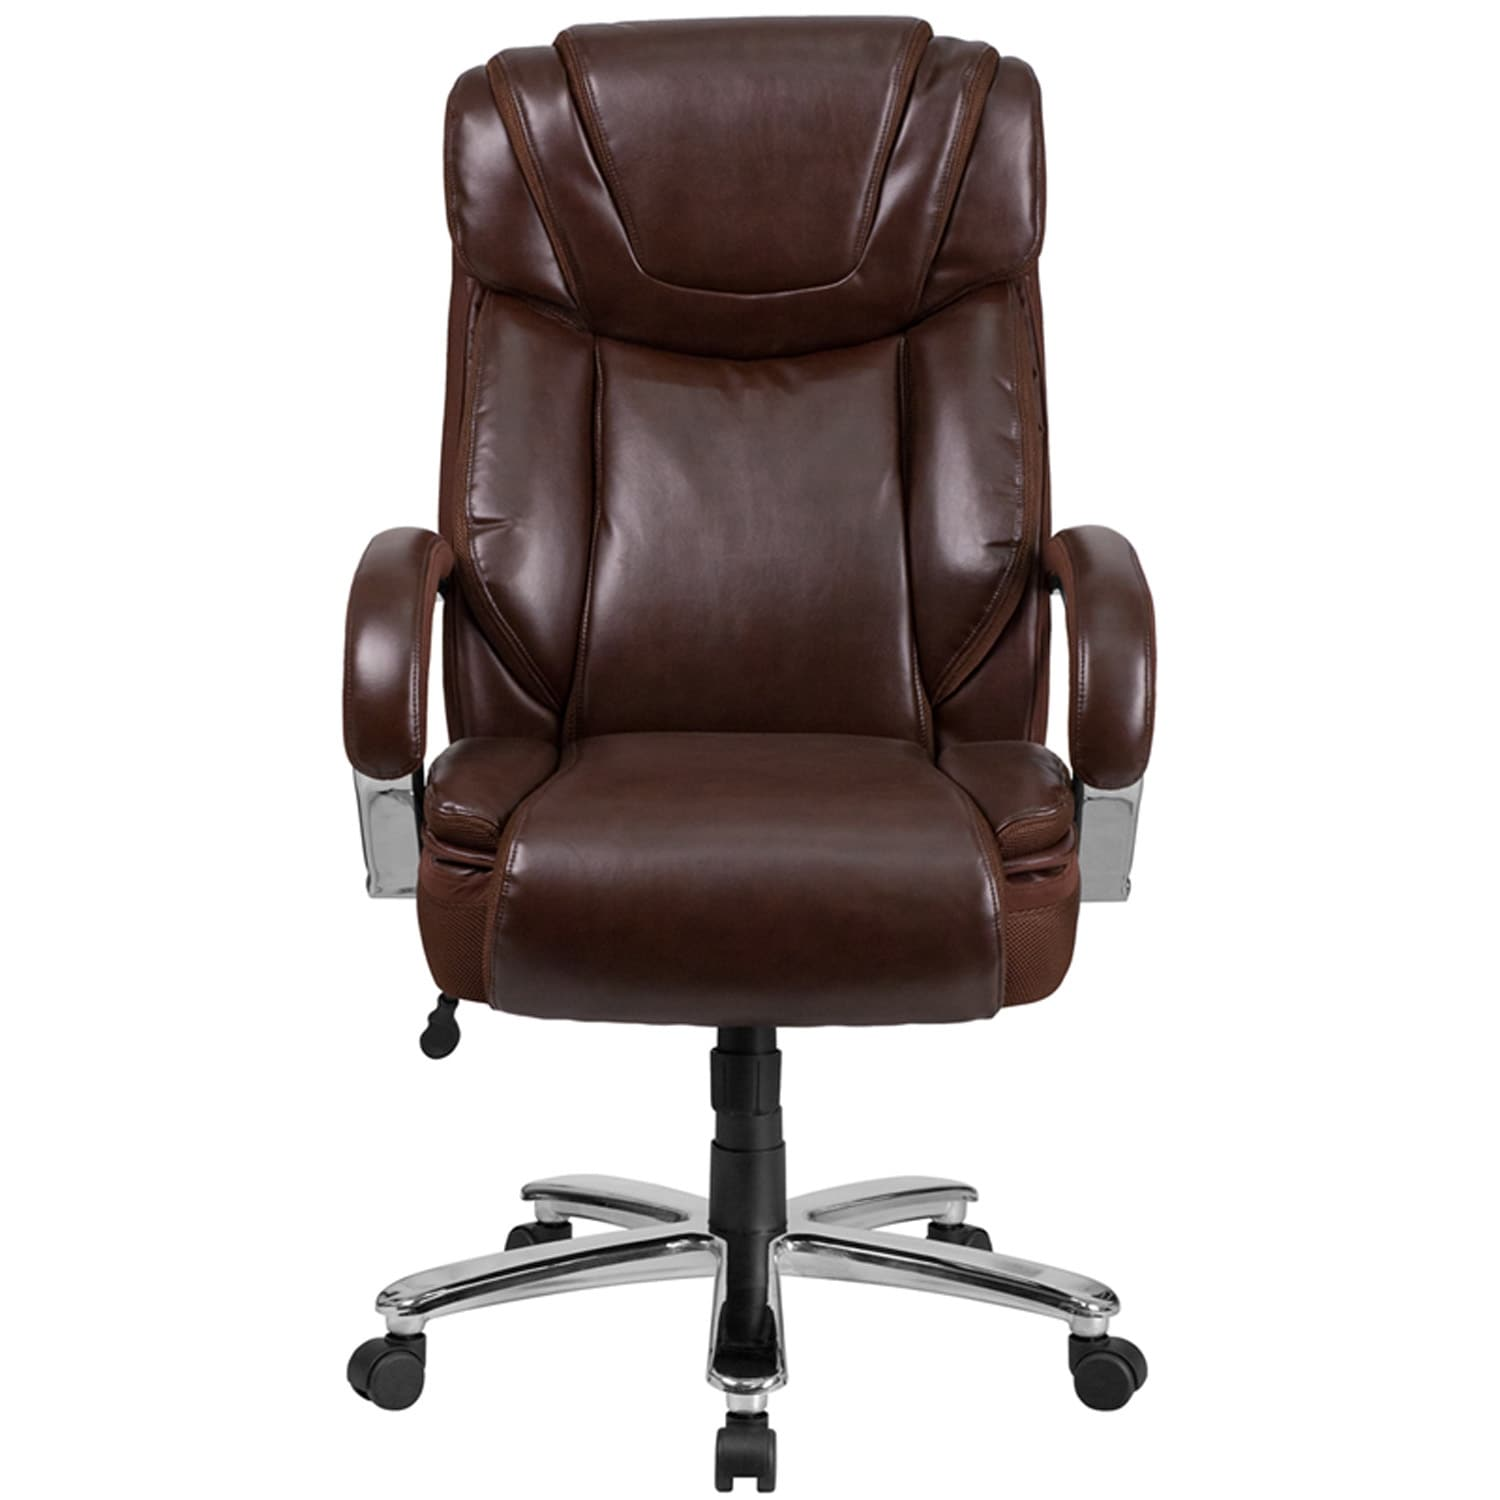 Aberdeen Big Tall Brown Leather Executive Swivel Chair W Extra Wide Seat